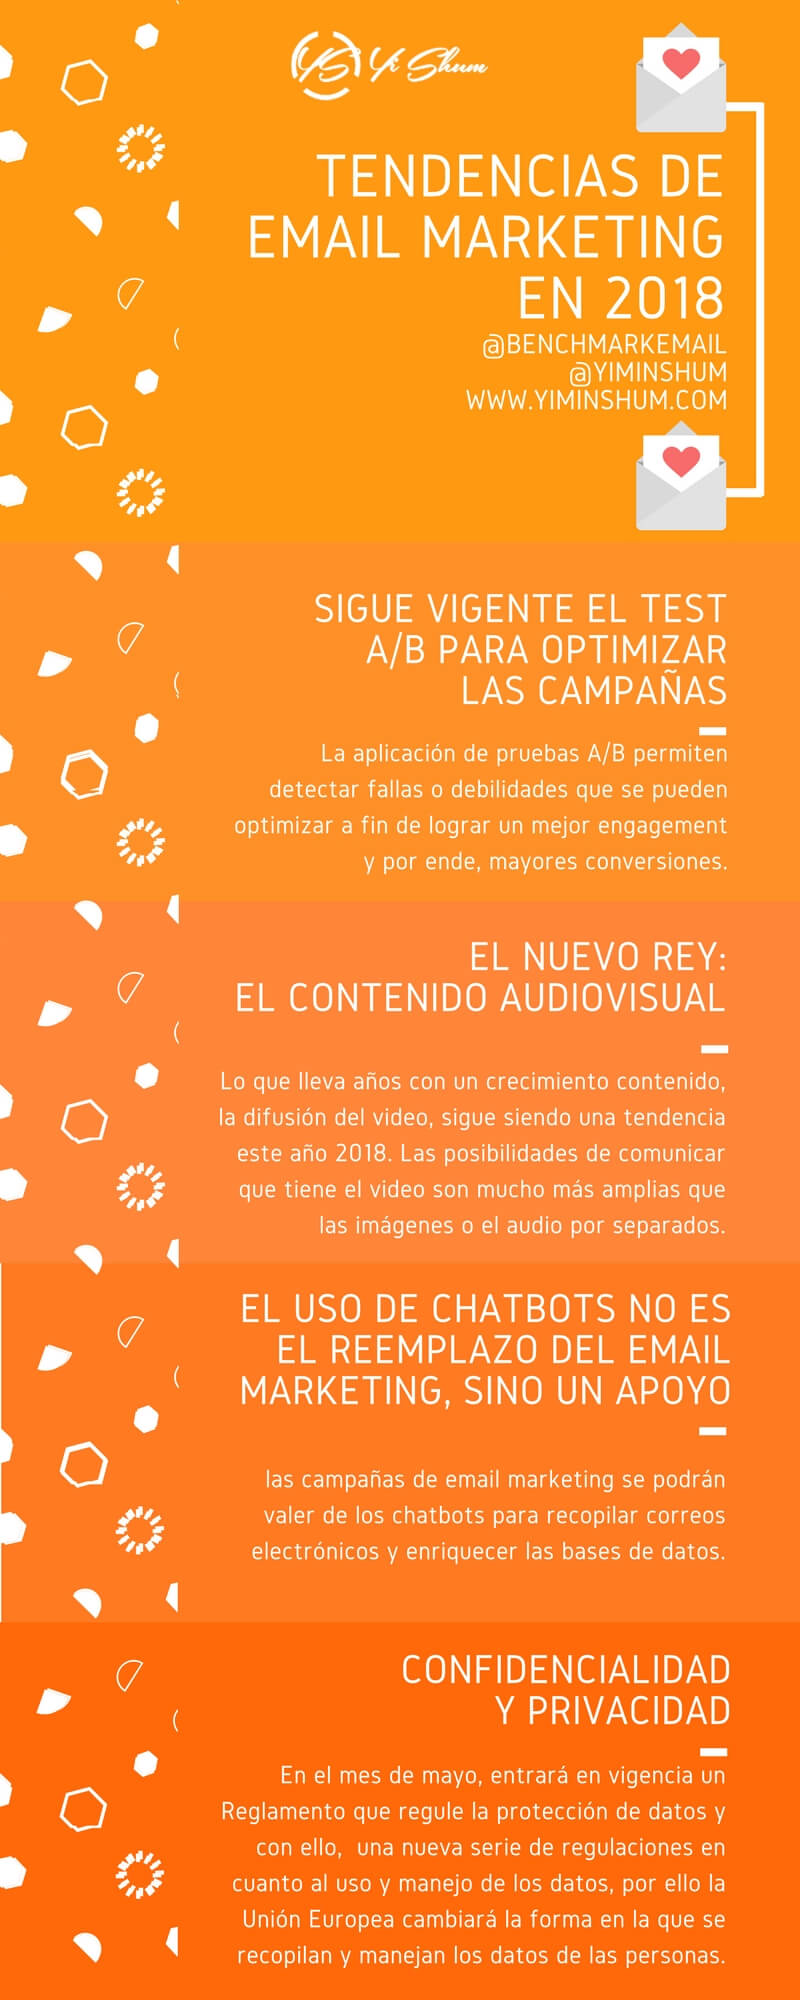 Tendencias de email marketing en 2018 infografía imagen